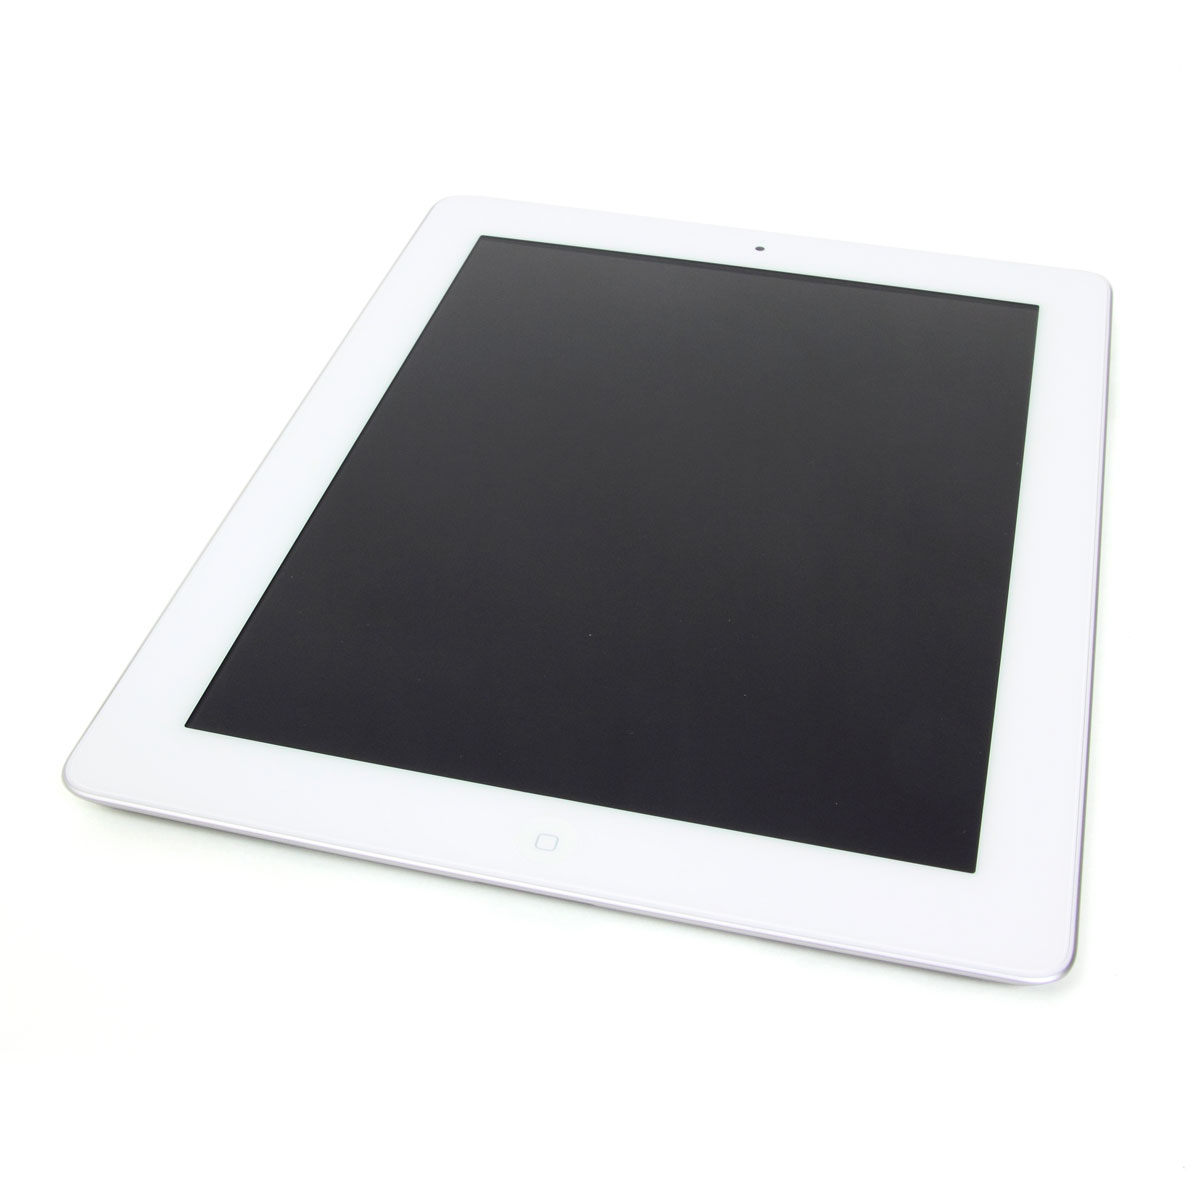 "Tablette tactile Apple iPad 2 Wi-Fi 32 Go Blanc Tablette Internet - Apple A5 1 GHz 512 Mo 32 Go 9.7"" LED tactile Wi-Fi N/Bluetooth Webcam iOS 4)"